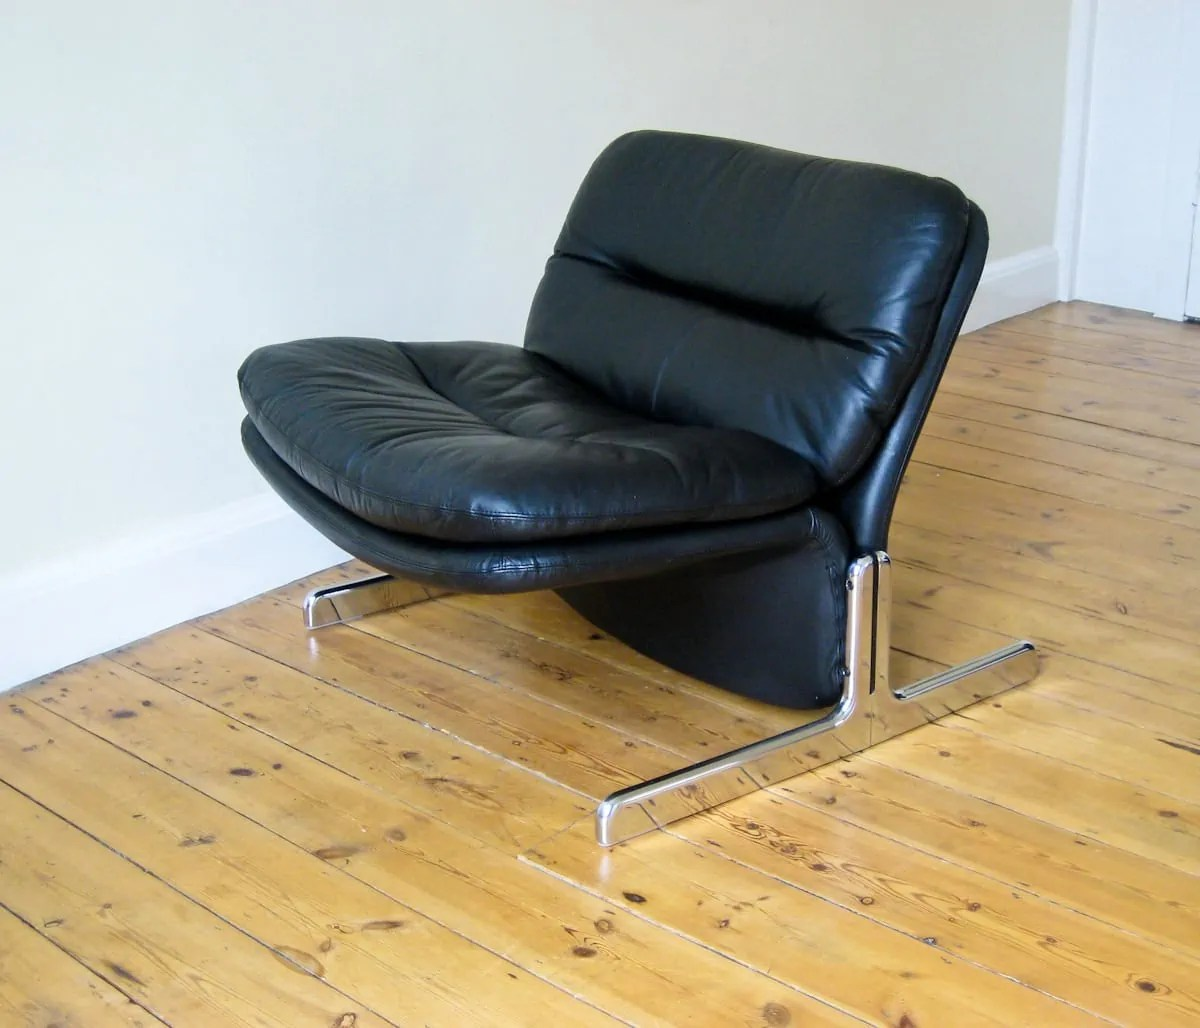 retro sofas london how to clean leather sofa with natural products vintage furniture brunati italian design alto